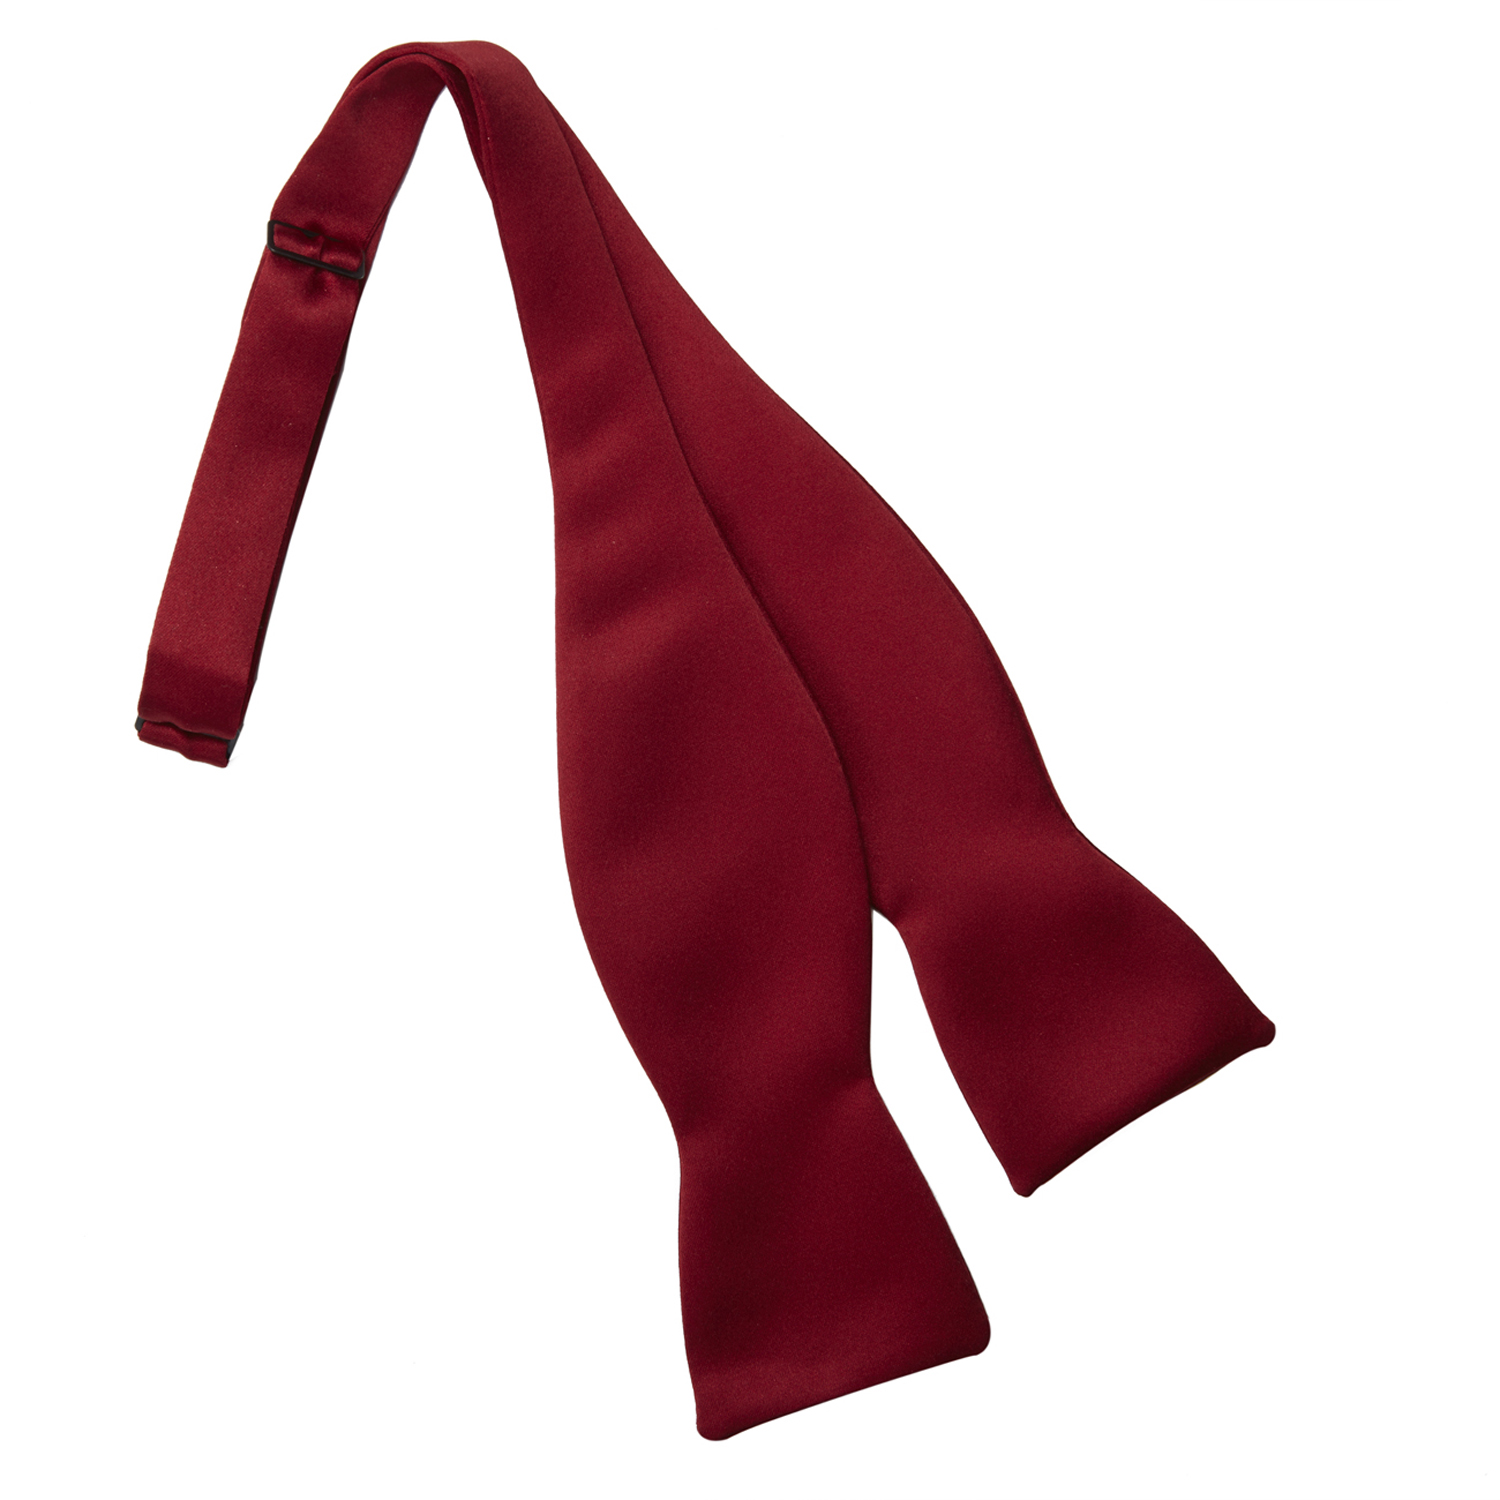 Also available in matching tie to tie!